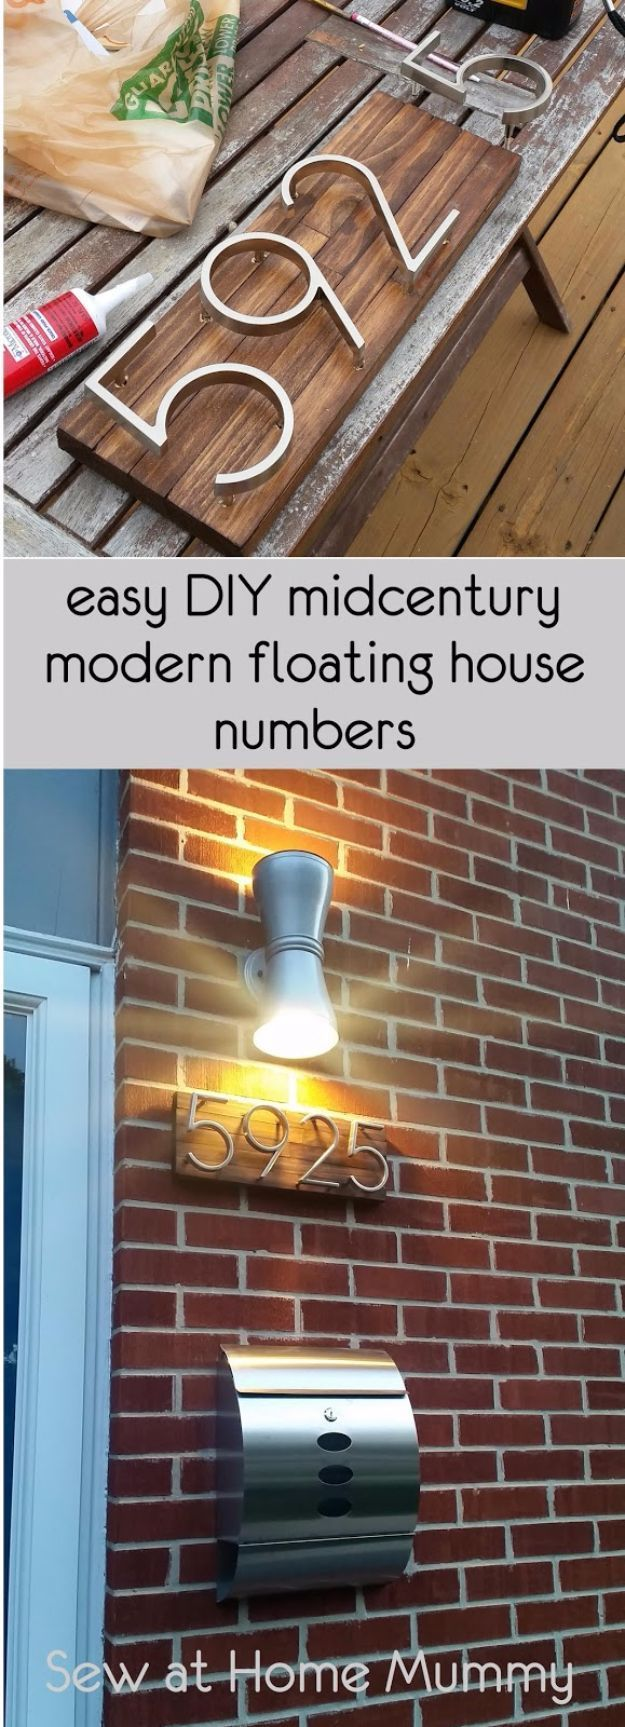 16 Enchanting Modern Entrance Designs That Boost The Appeal Of The Home: 42 DIY Ideas To Increase Curb Appeal (plus Home Value!)